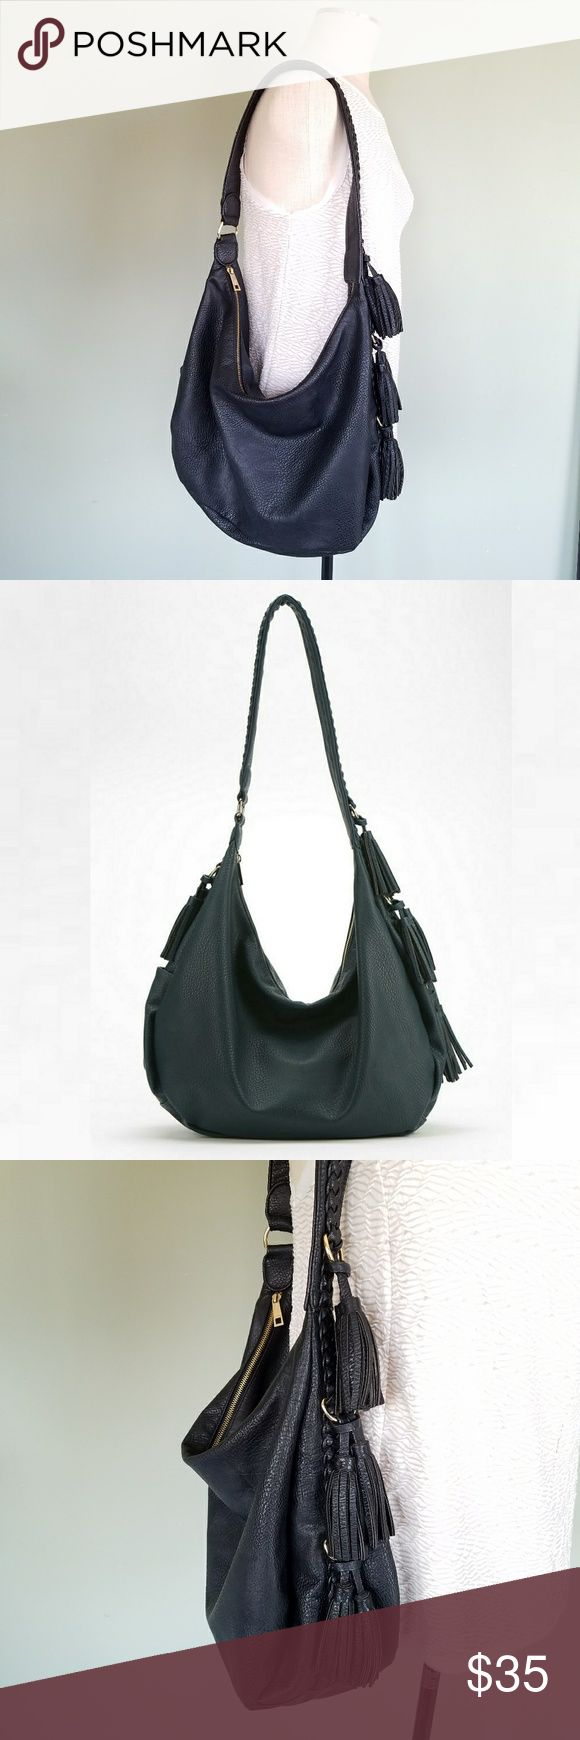 """Urban Outfitters Ecote Braid Strap Tassel Hobo Bag Ecote. Urban Outfitters exclusive. Black slouchy spacious hobo bag.  Pebbled vegan faux leather exterior.  Braided overlay along the strap and sides.  Tassel trim. Polished metal gold tone hardware. Zippered top. Lined interior with a zip pocket. Bag exterior and strap are in excellent condition.  Interior lining is stained and slightly faded. Length: 20"""". Width: 1"""". Height: 13"""". Strap drop: 11.5"""". Urban Outfitters Bags Hobos"""